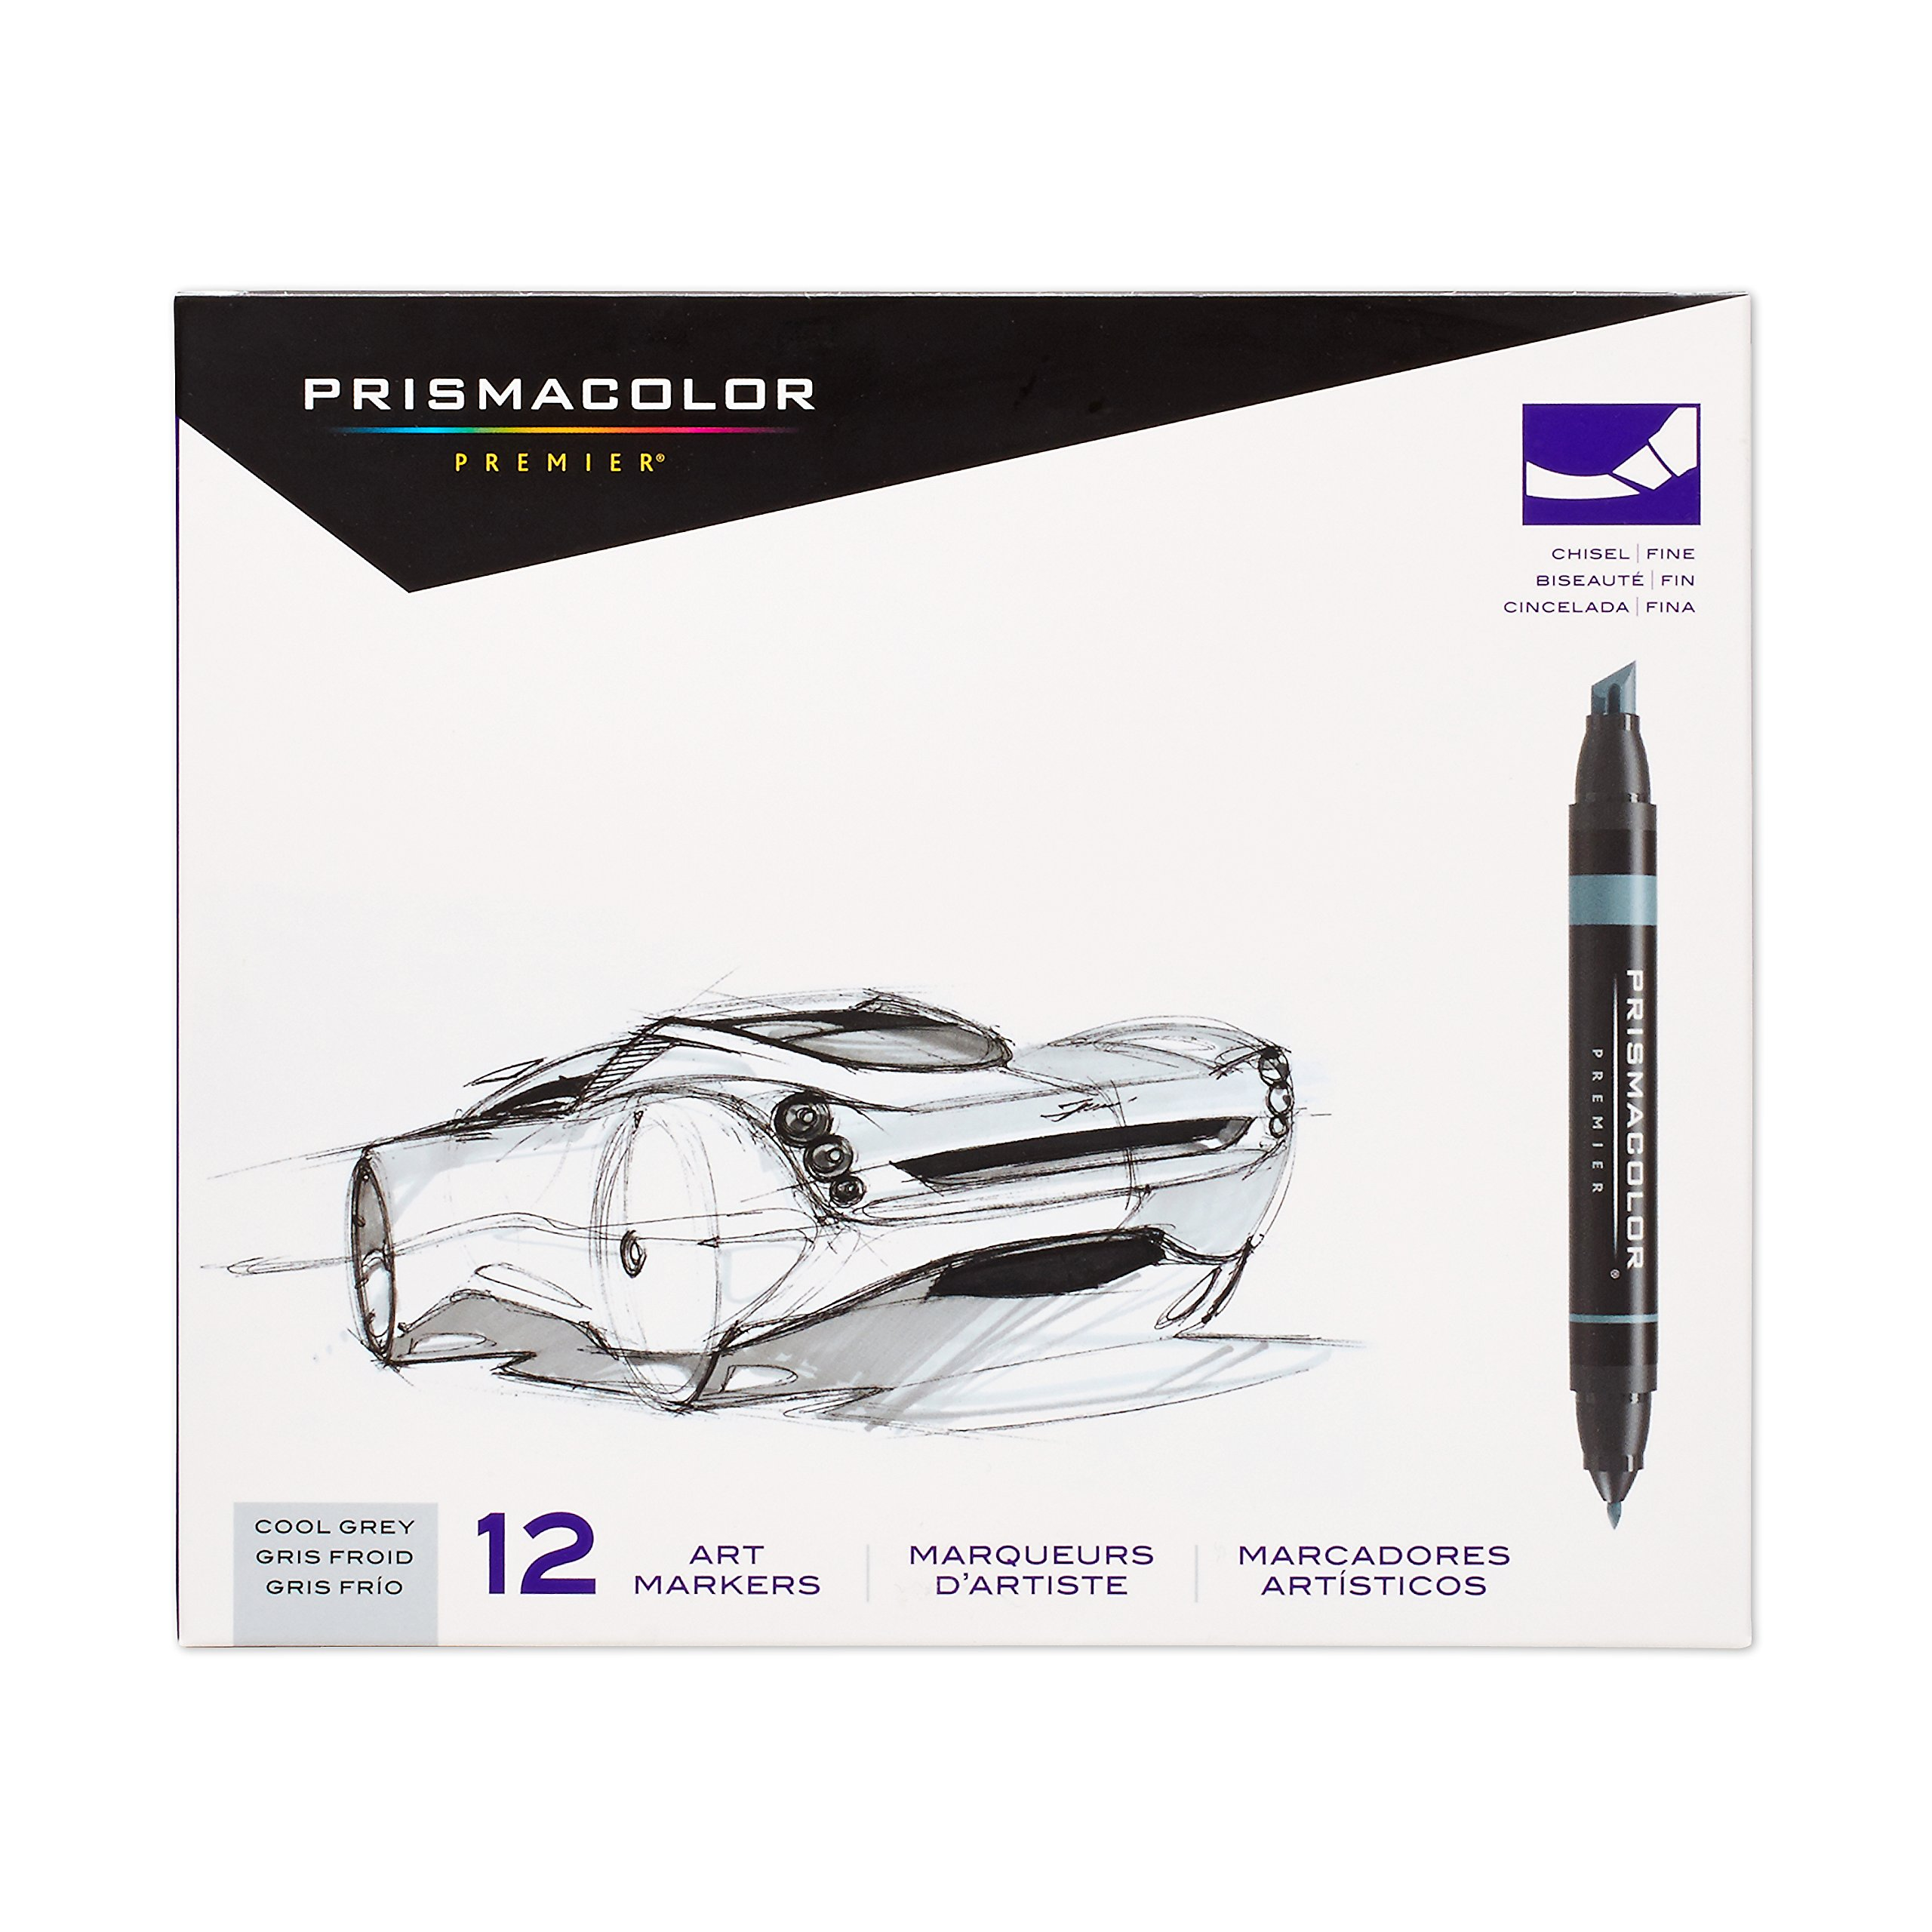 Prismacolor 3622 Premier Double-Ended Art Markers, Fine and Chisel Tip, Cool Grey, 12-Count by Prismacolor